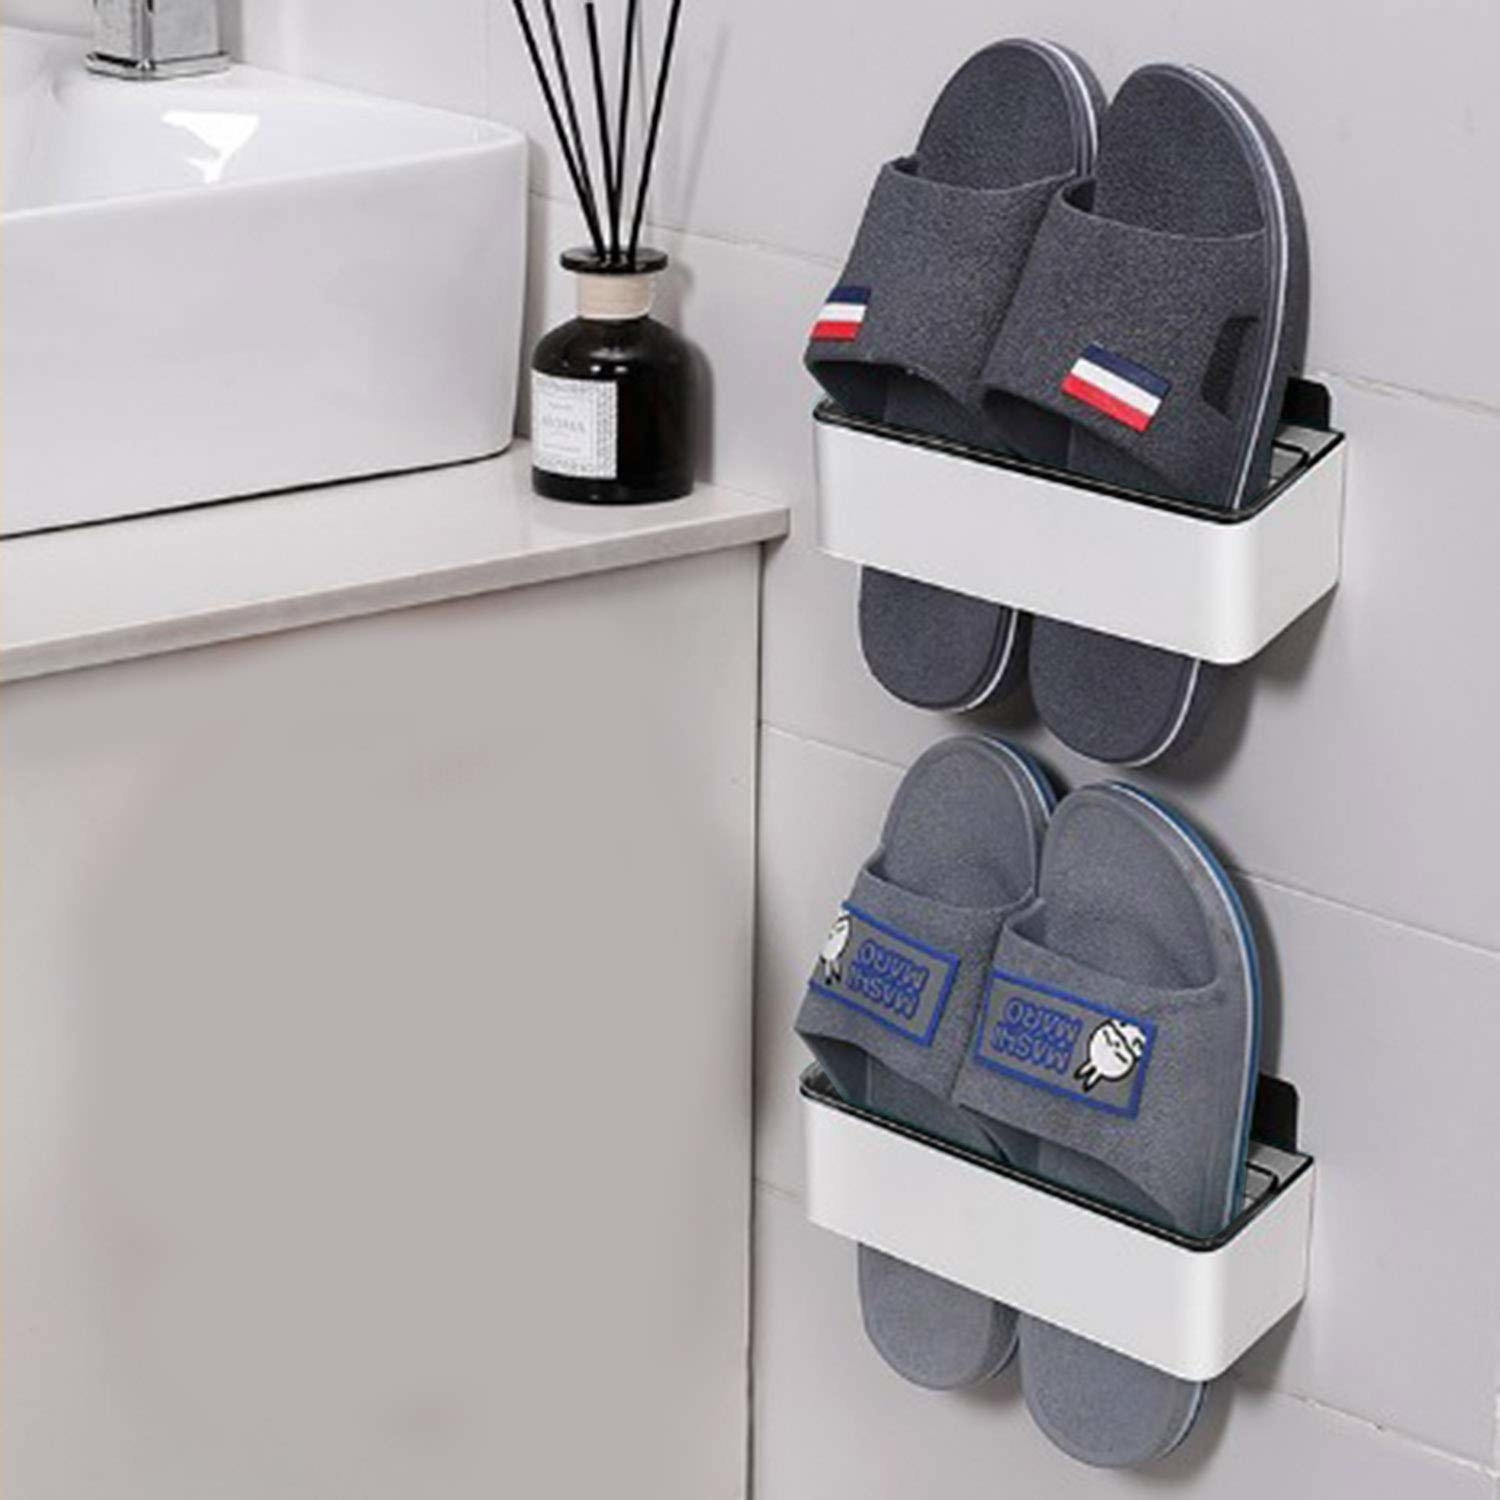 A set of 2 wall mounted bathroom racks in white & black with flip flops hung on them